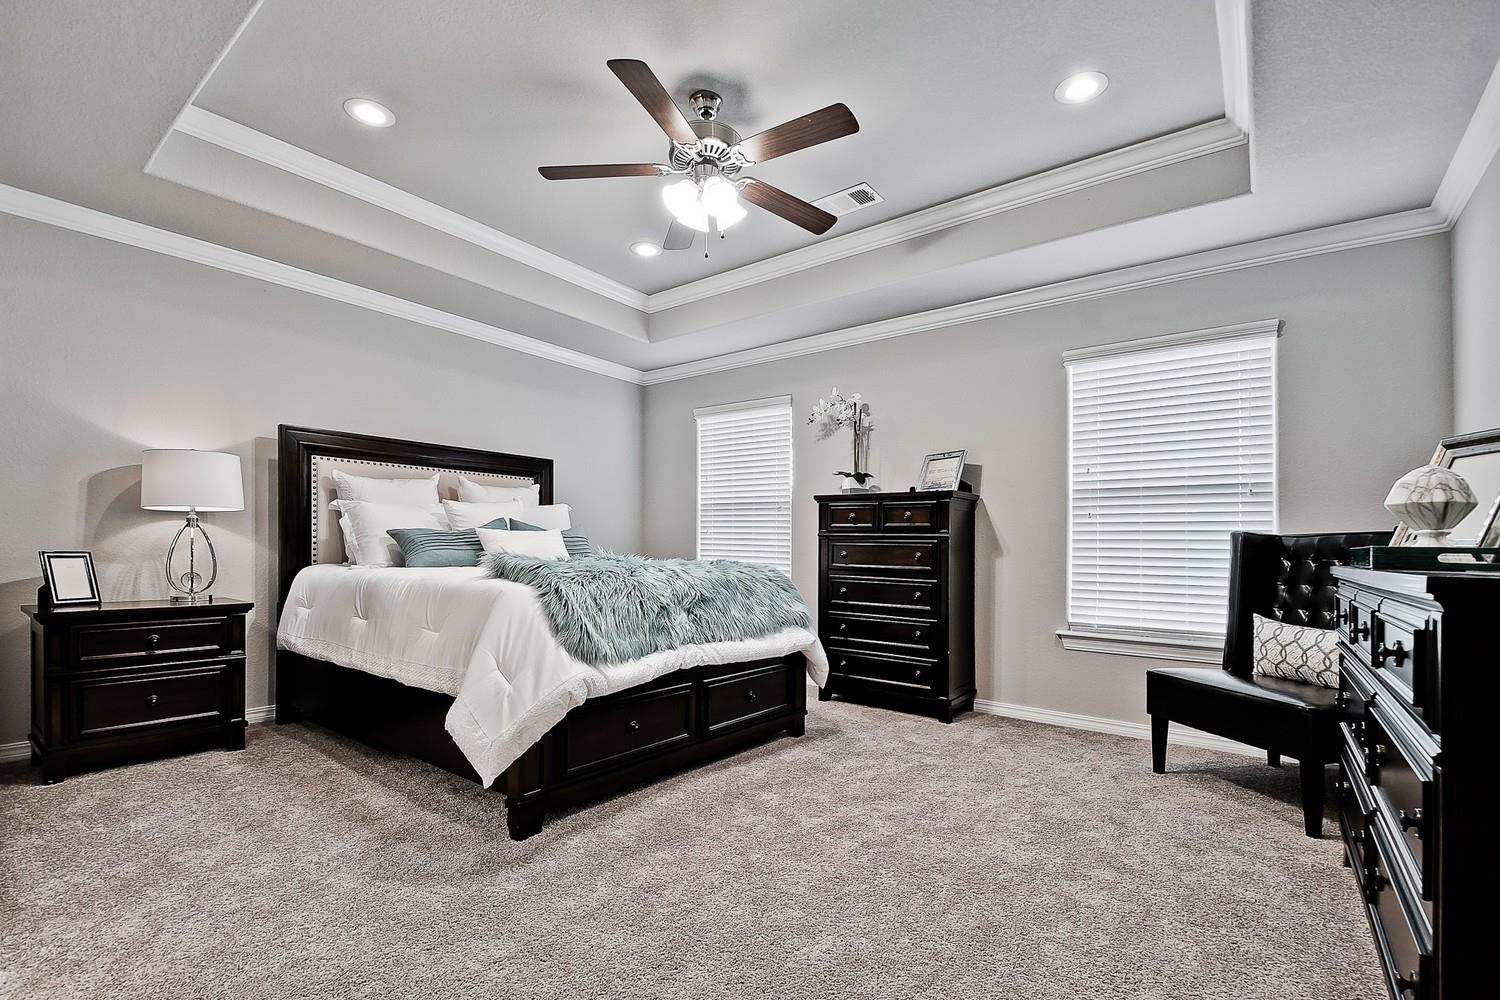 Bedroom featured in the 2016 By Riverwood Homes - Arkansas in Fayetteville, AR